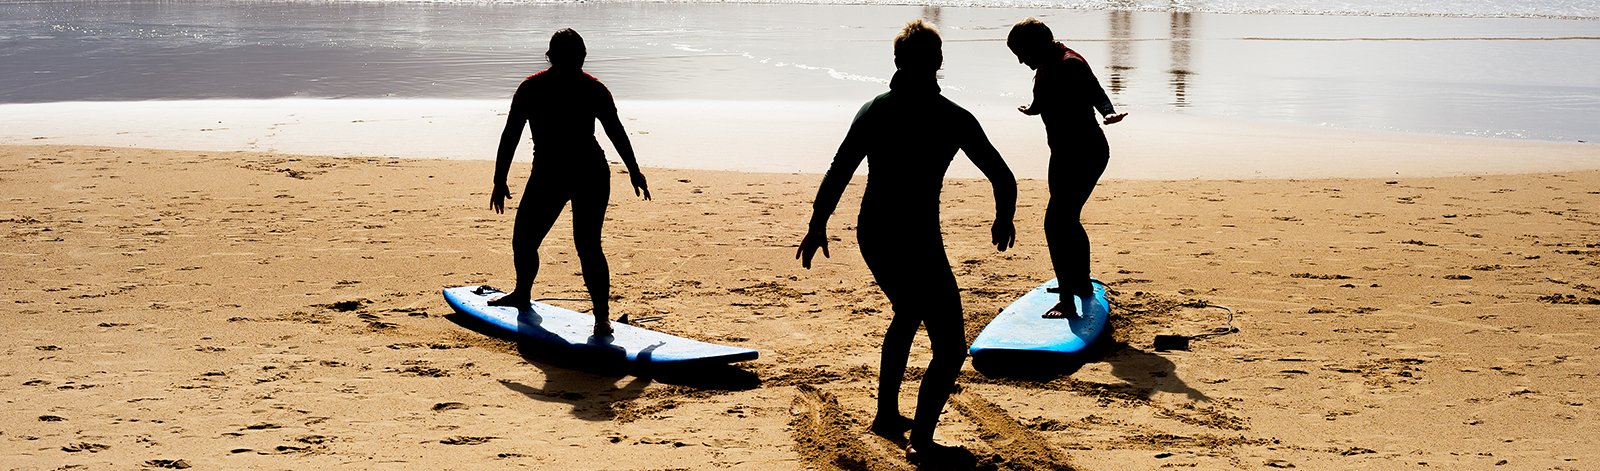 People learning to surf on the beach